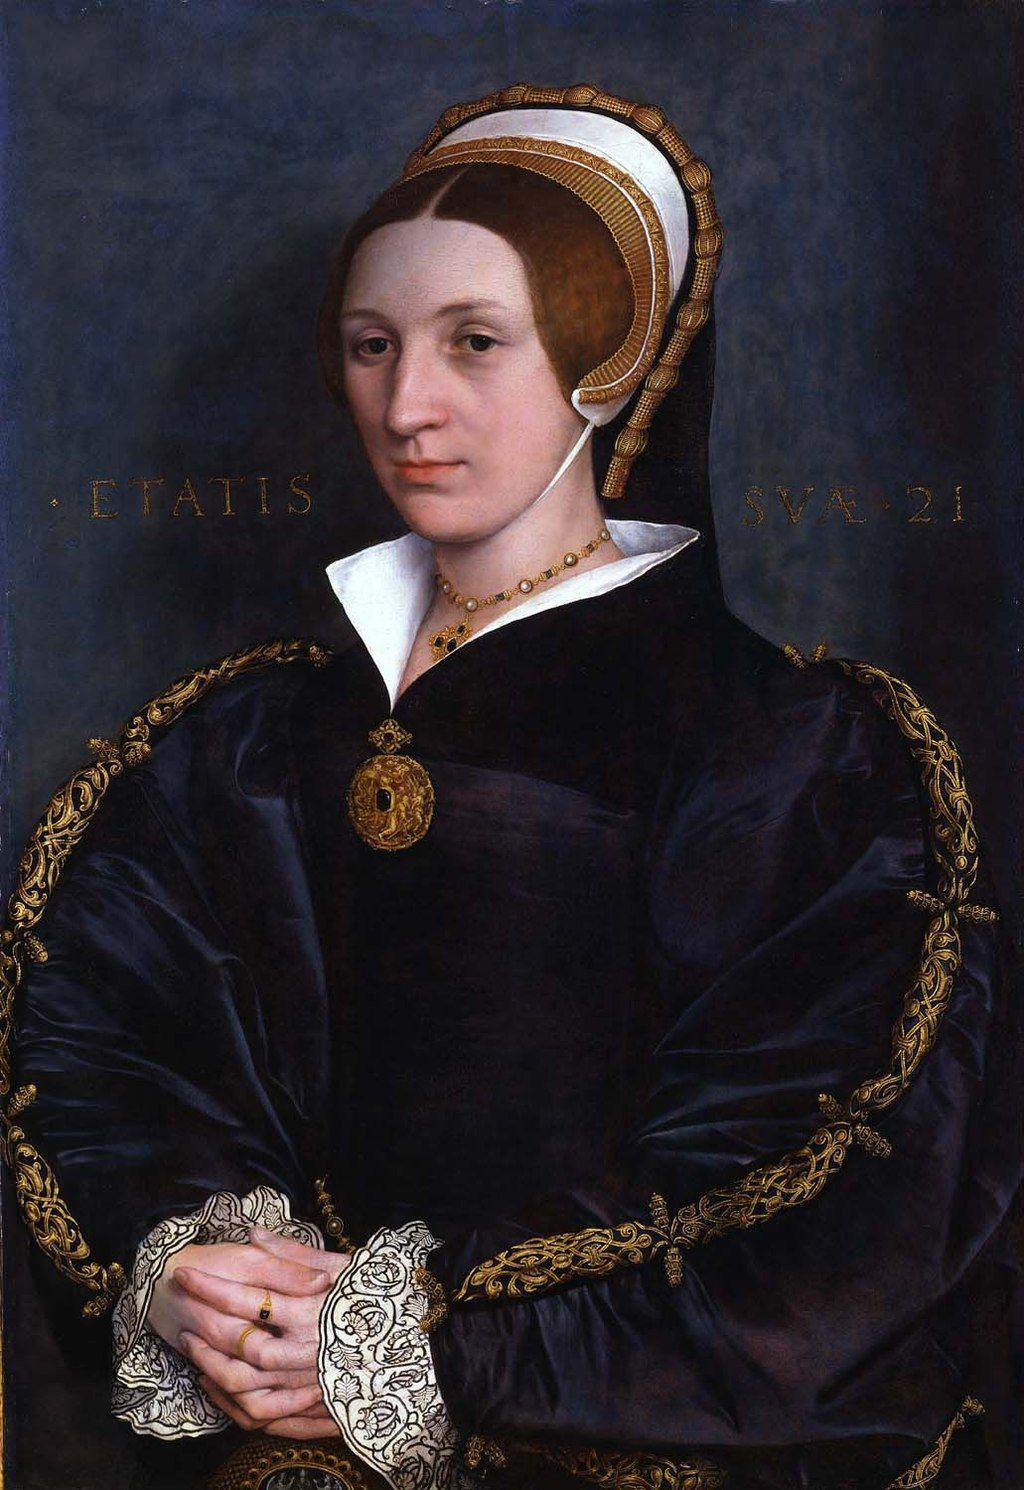 A Hans Holbein portrait previously identified as a likeness of Catherine Howard but now thought to depict a member of the Cromwell family